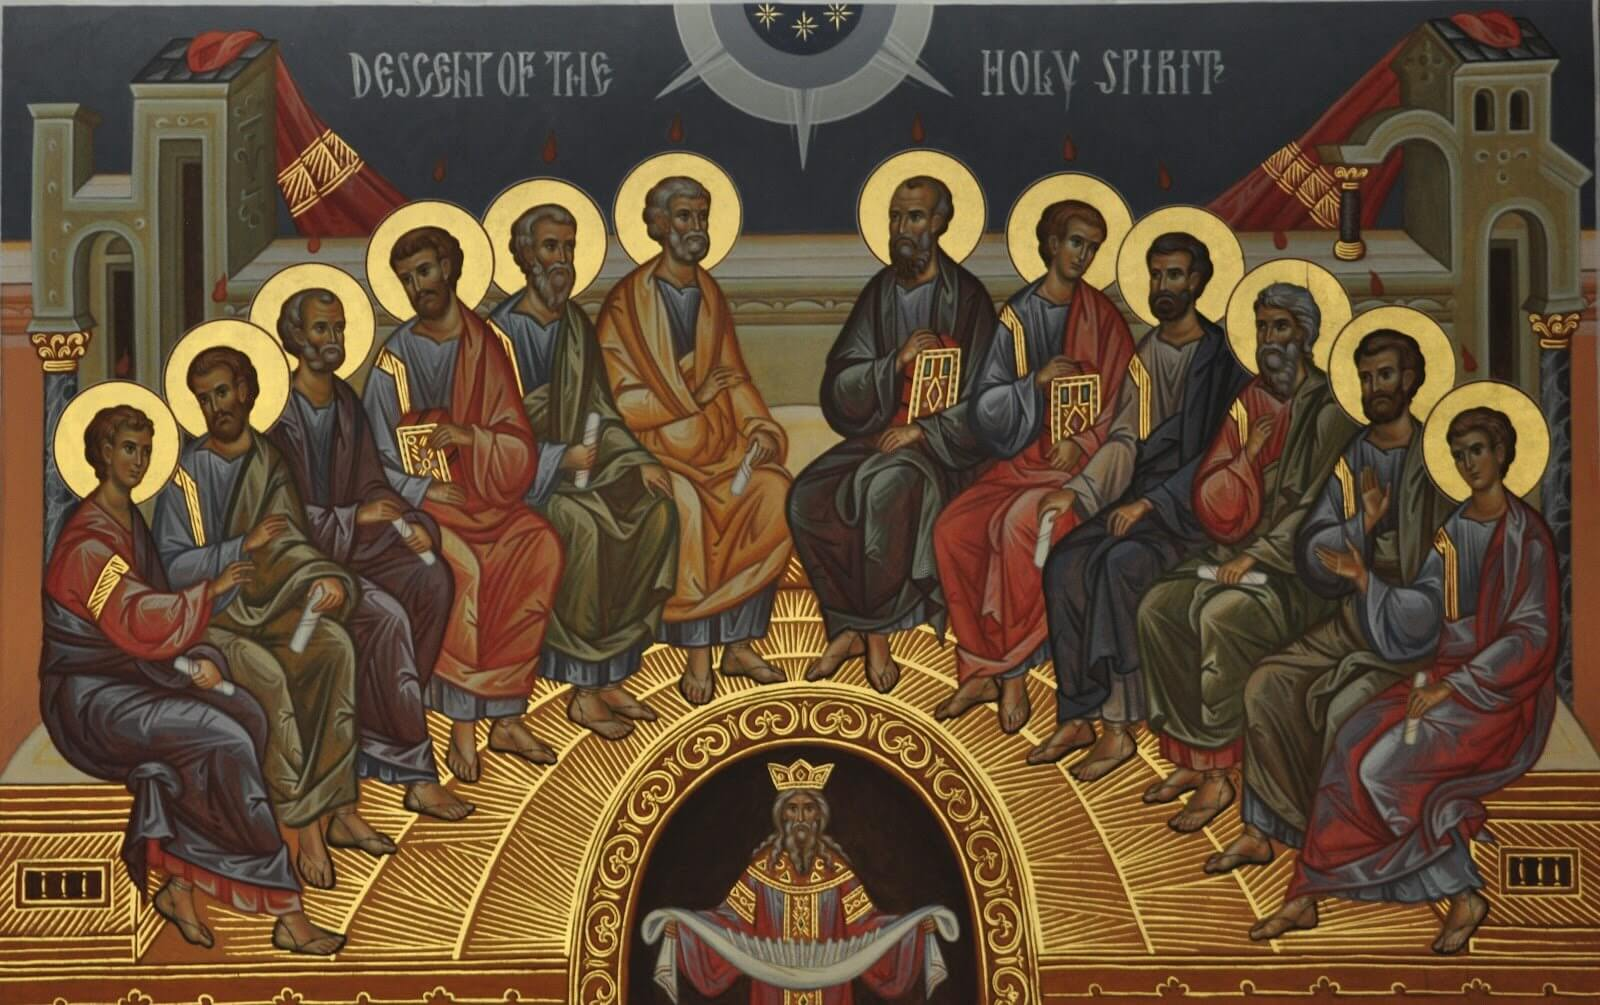 St. Theodore the Studite: On Holy Pentecost